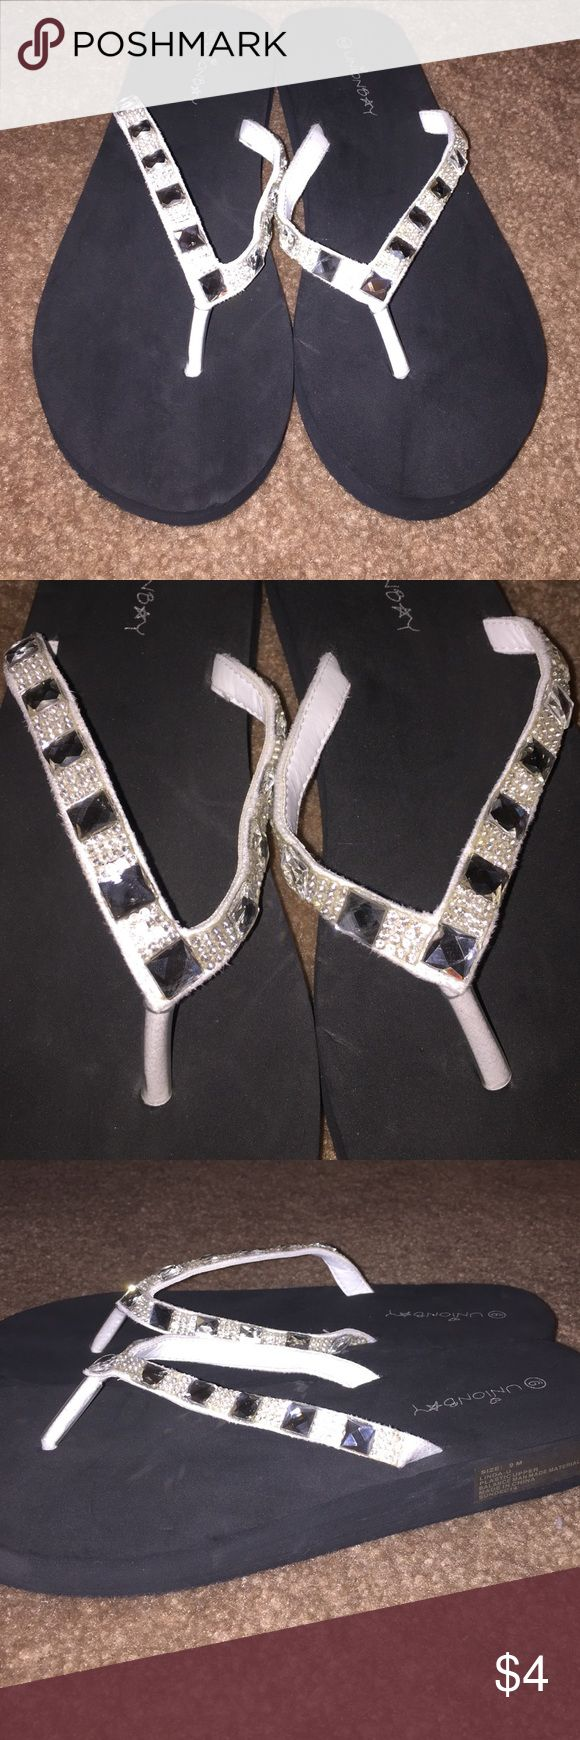 White Bling flip flops! Super comfy Sandals! They have white straps with bling rhinestones! The sole is made of foam so they are soft! Brand New, never wore them! UNIONBAY Shoes Sandals